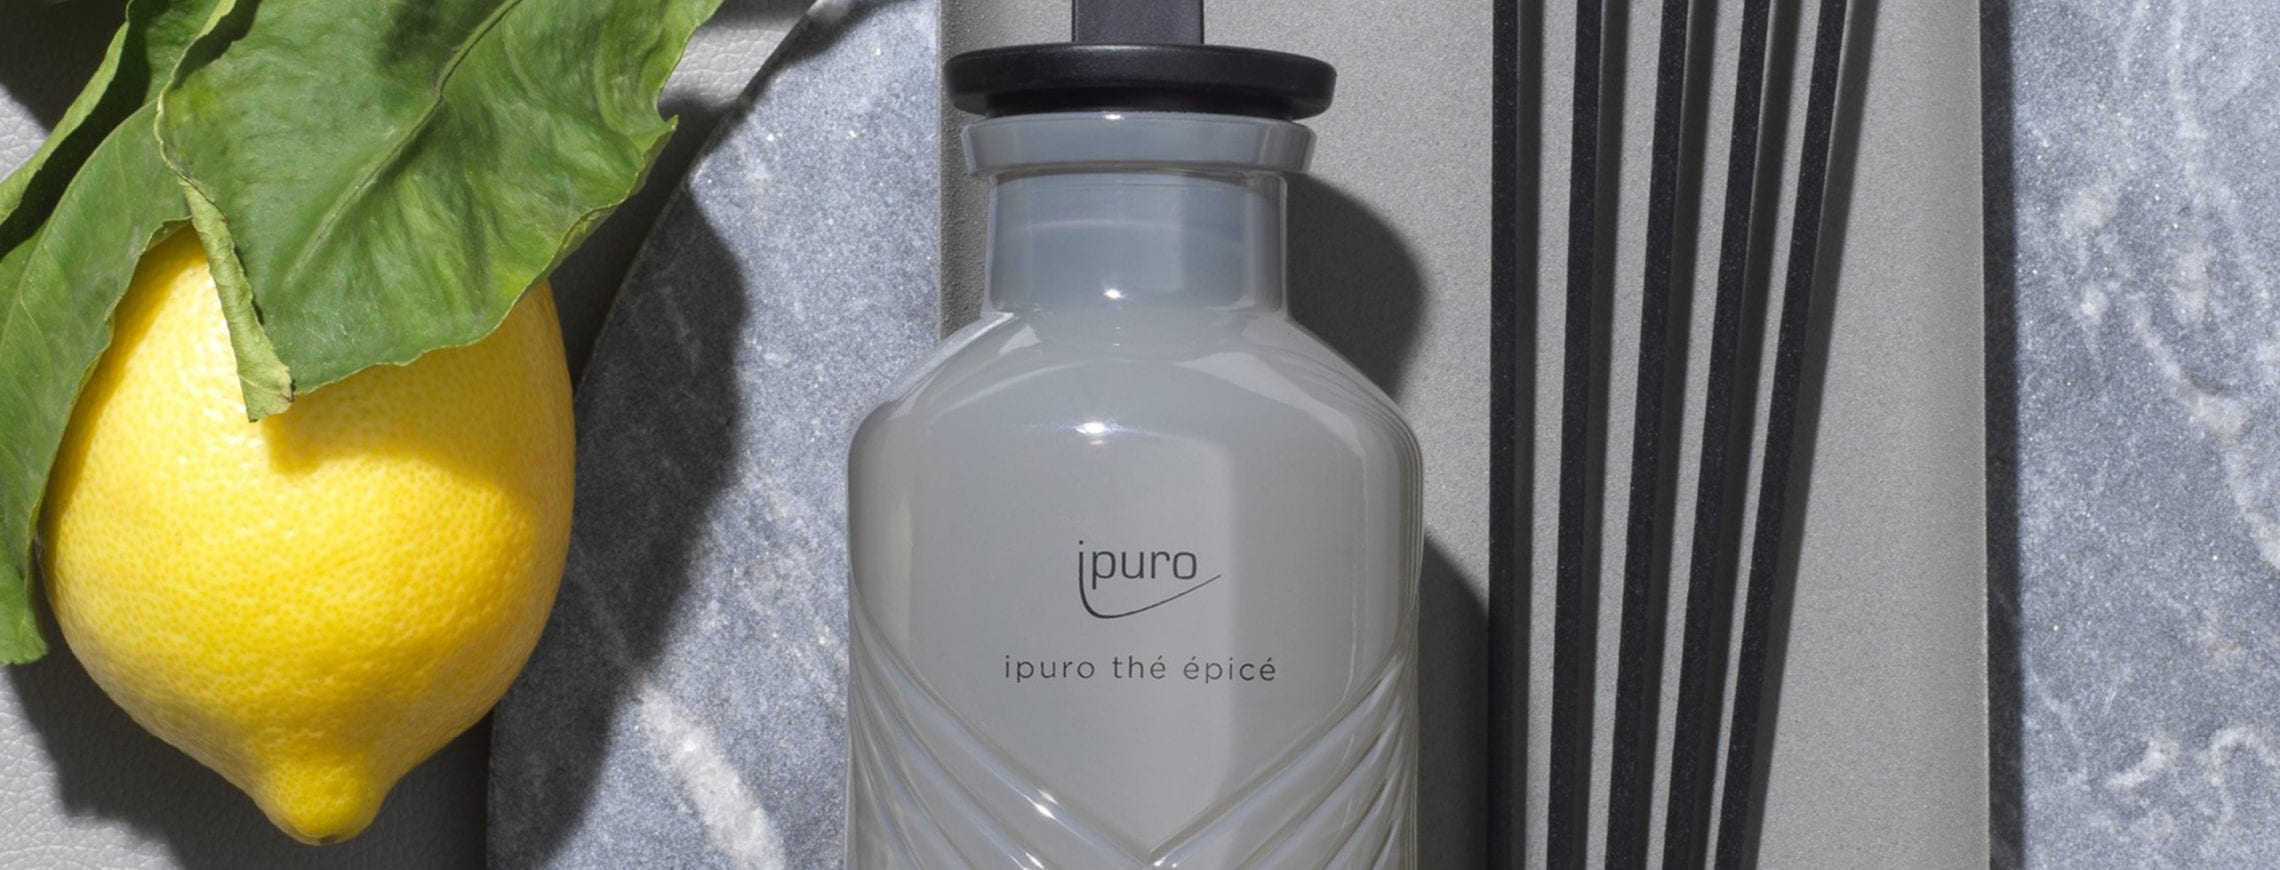 ipuro the epice packaging design